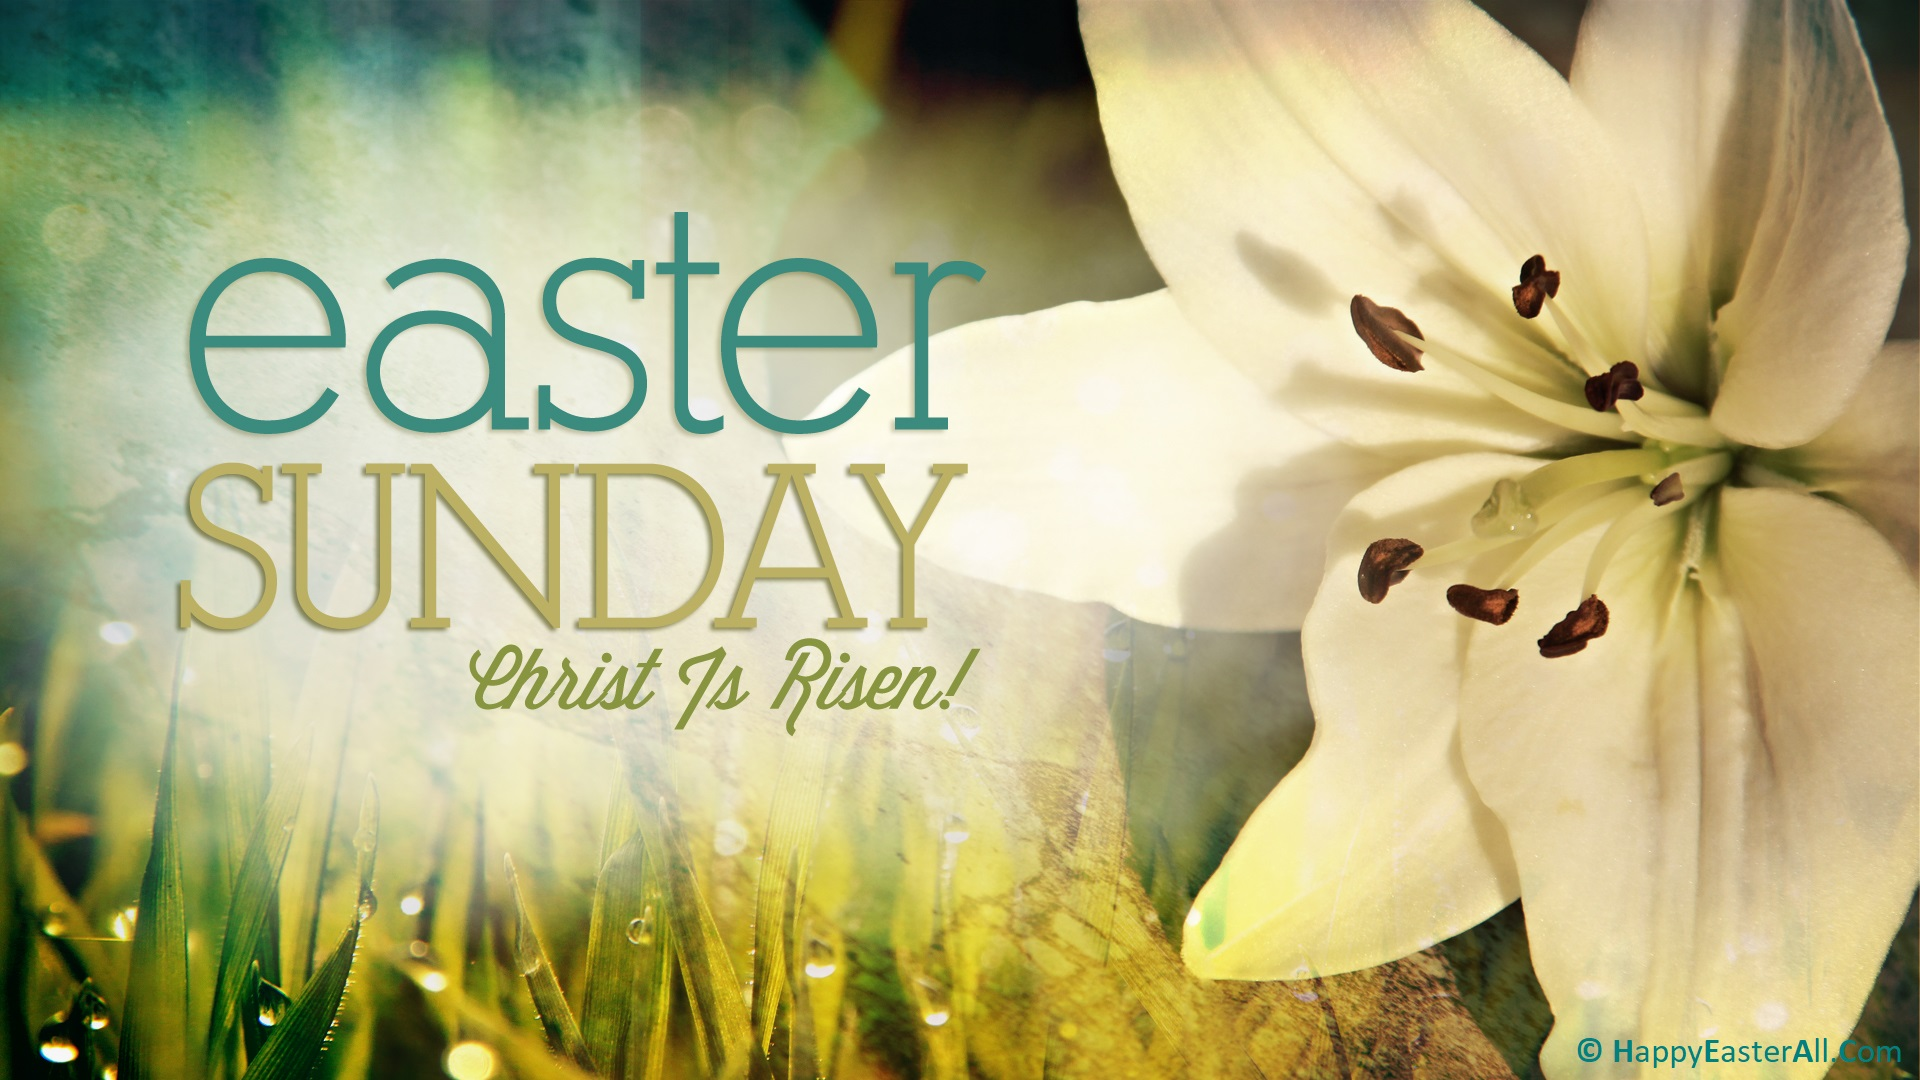 Happy Easter Sunday Images, Pictures, Photos